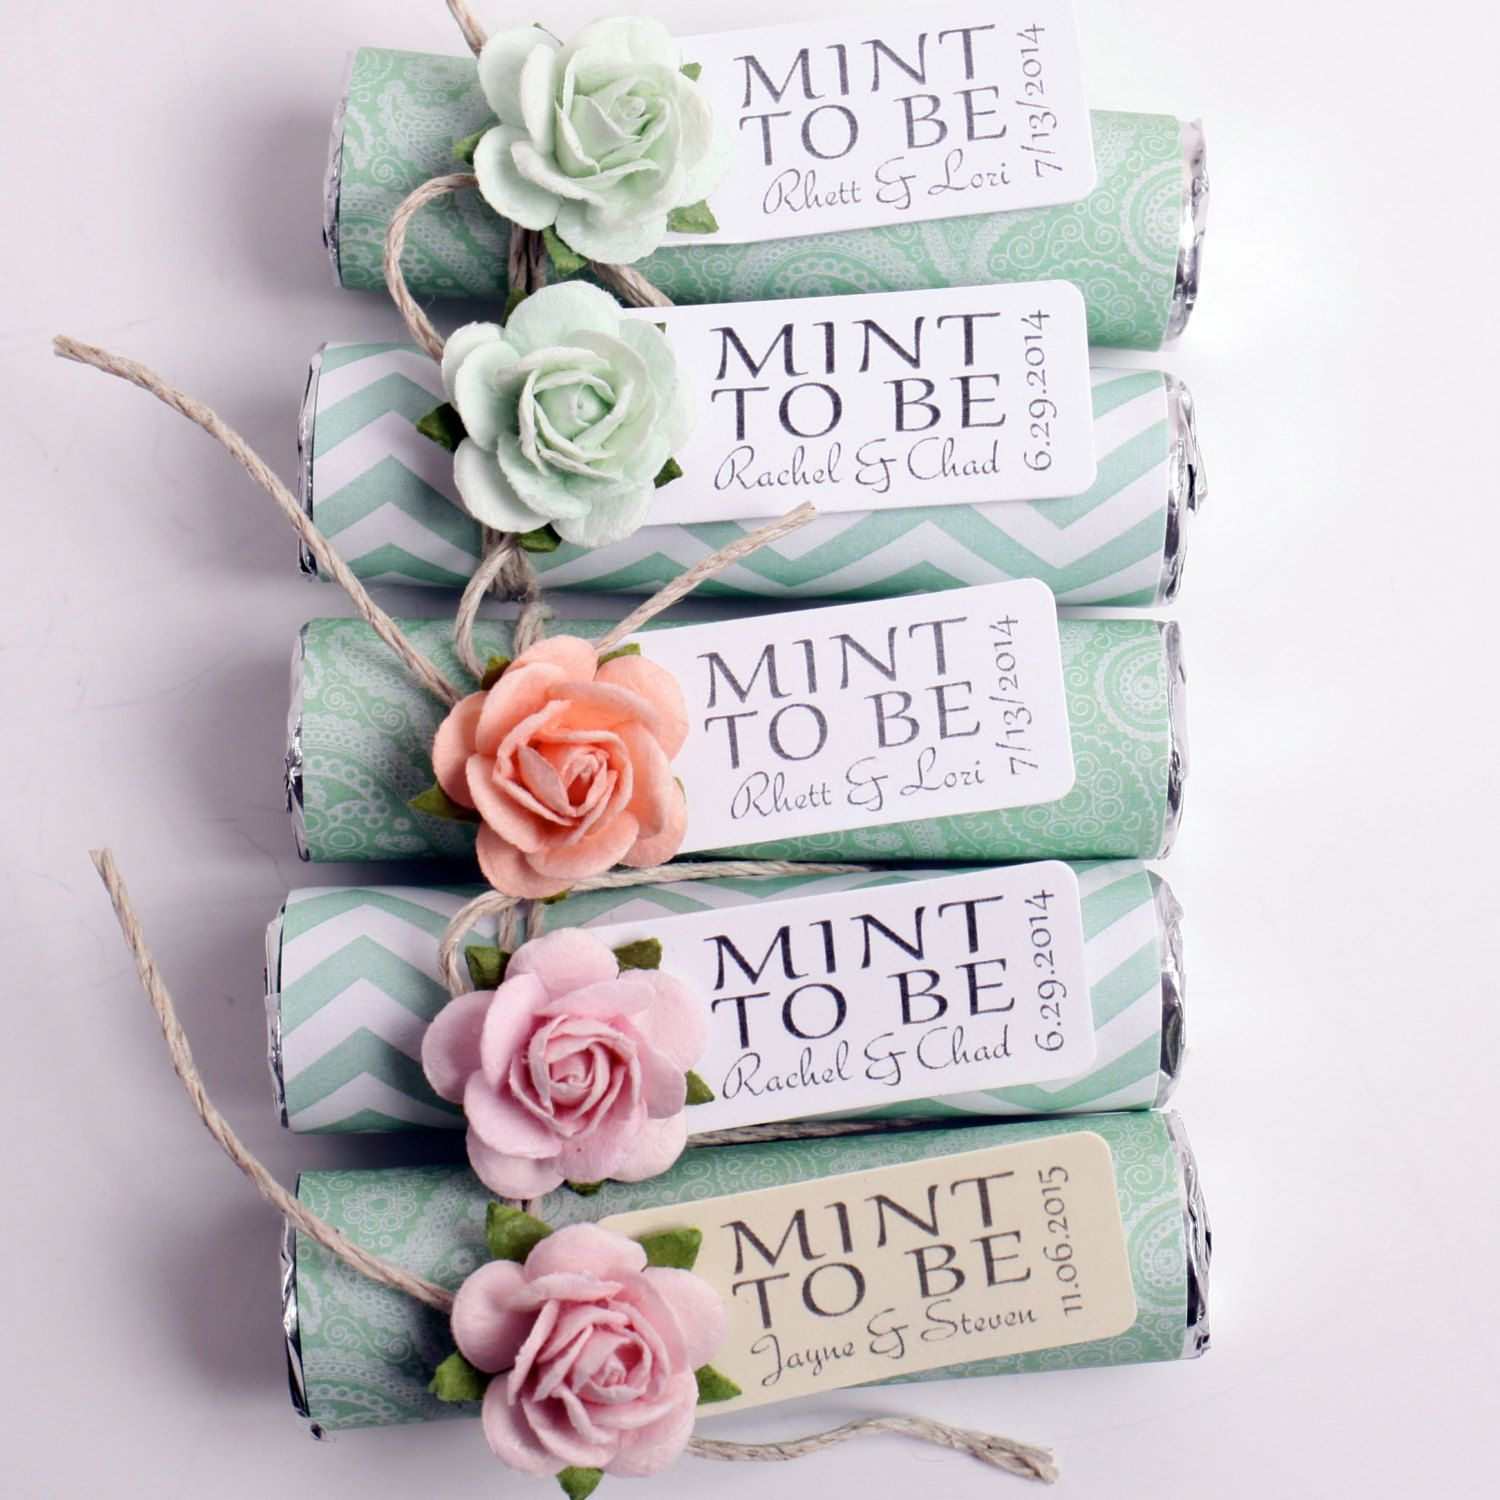 Mint Wedding Favors with Personalized Mint to Be Tags | Wedding ...